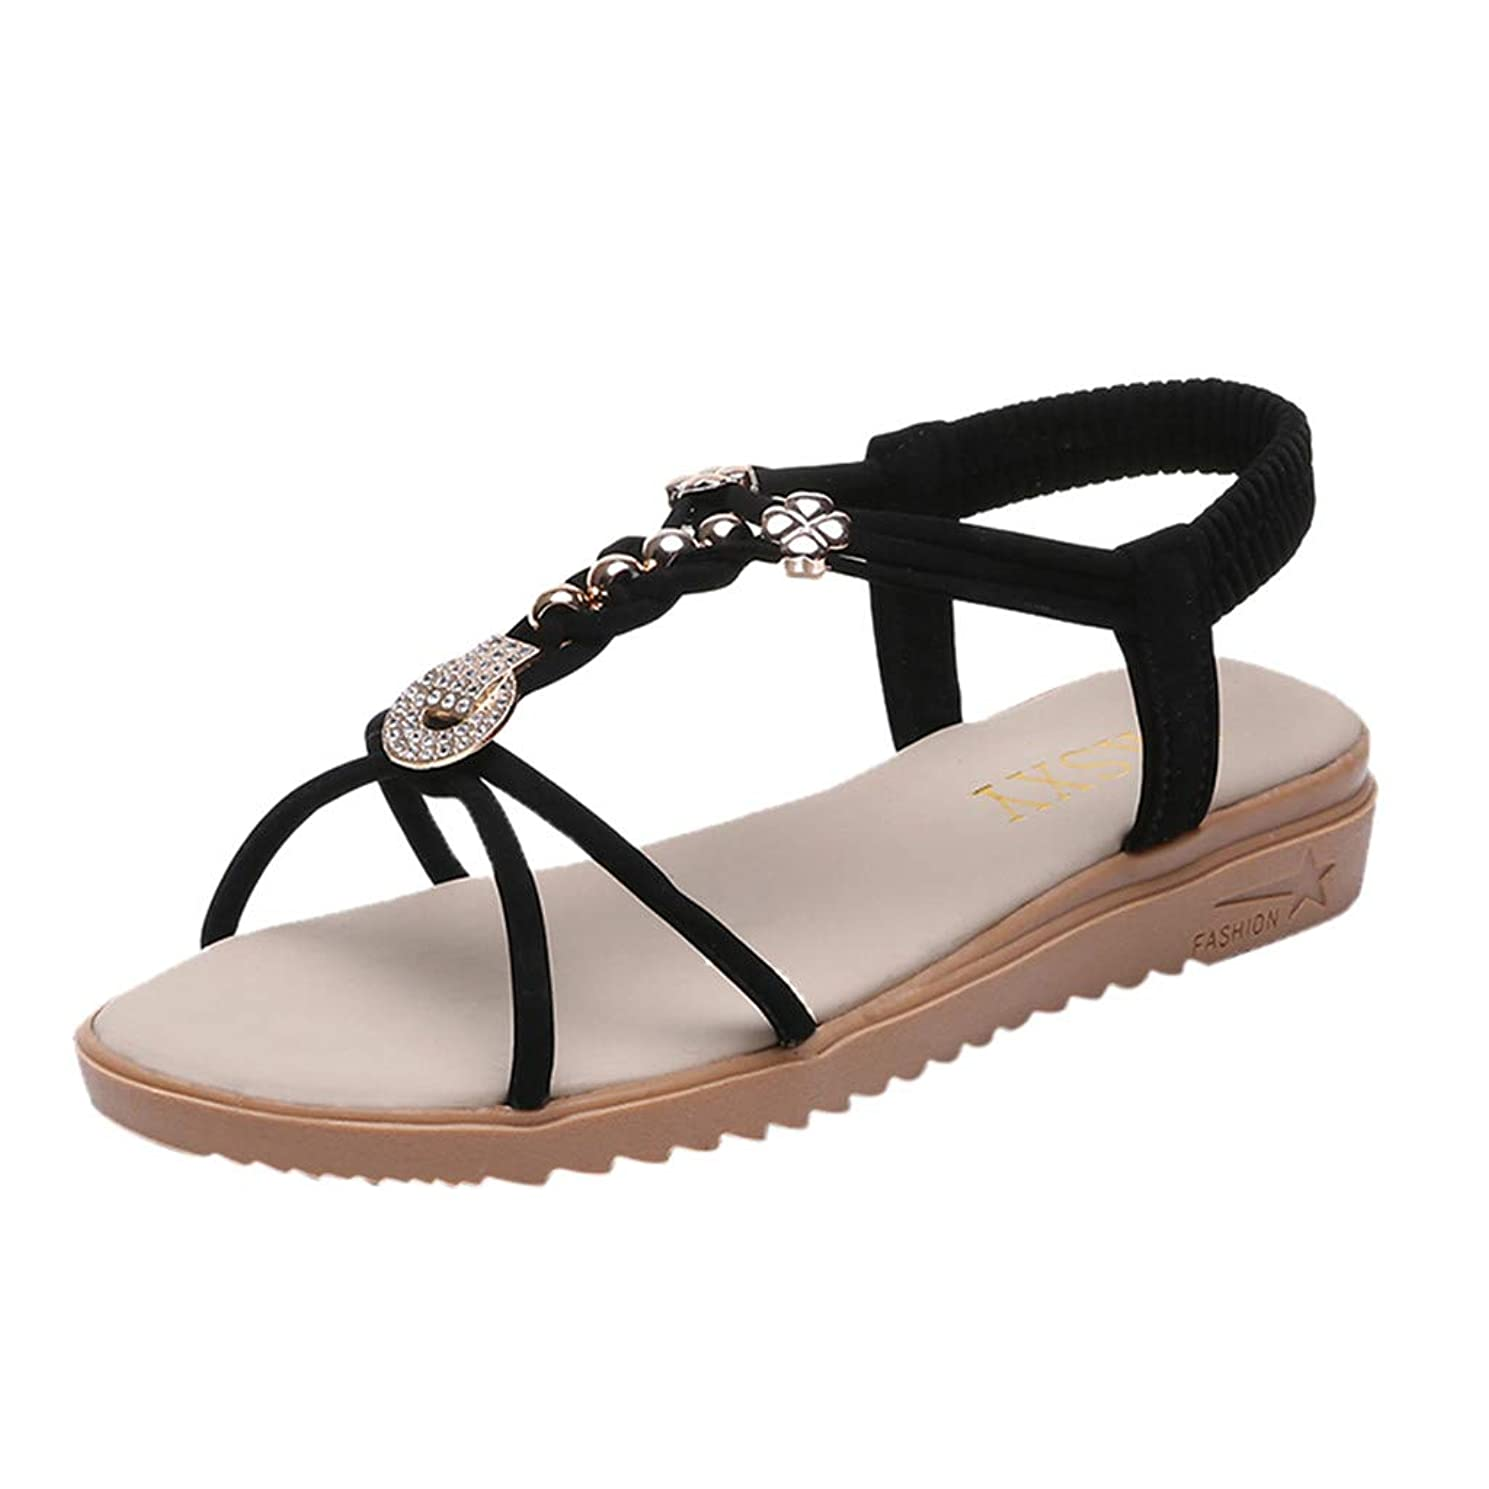 ERLOU Spring-Summer Women Ladies Open Toe Elastic Beach High-Heel Sandals Slippers Casual Shoes Fashion 2019?